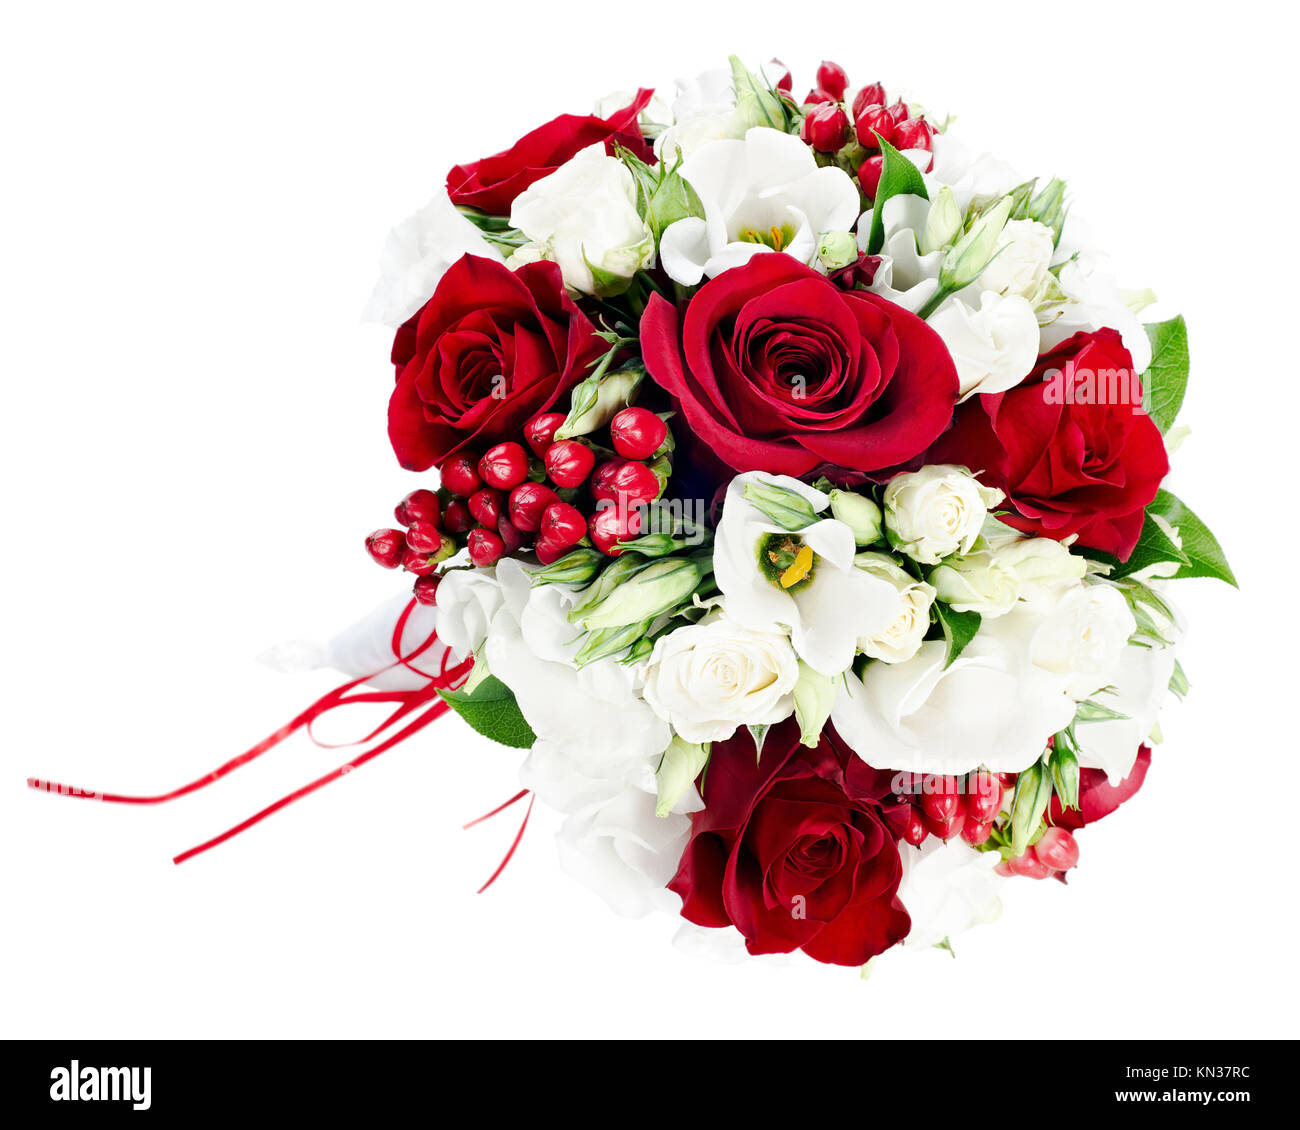 Flower Wedding Bouquet From White And Red Roses Isolated On White